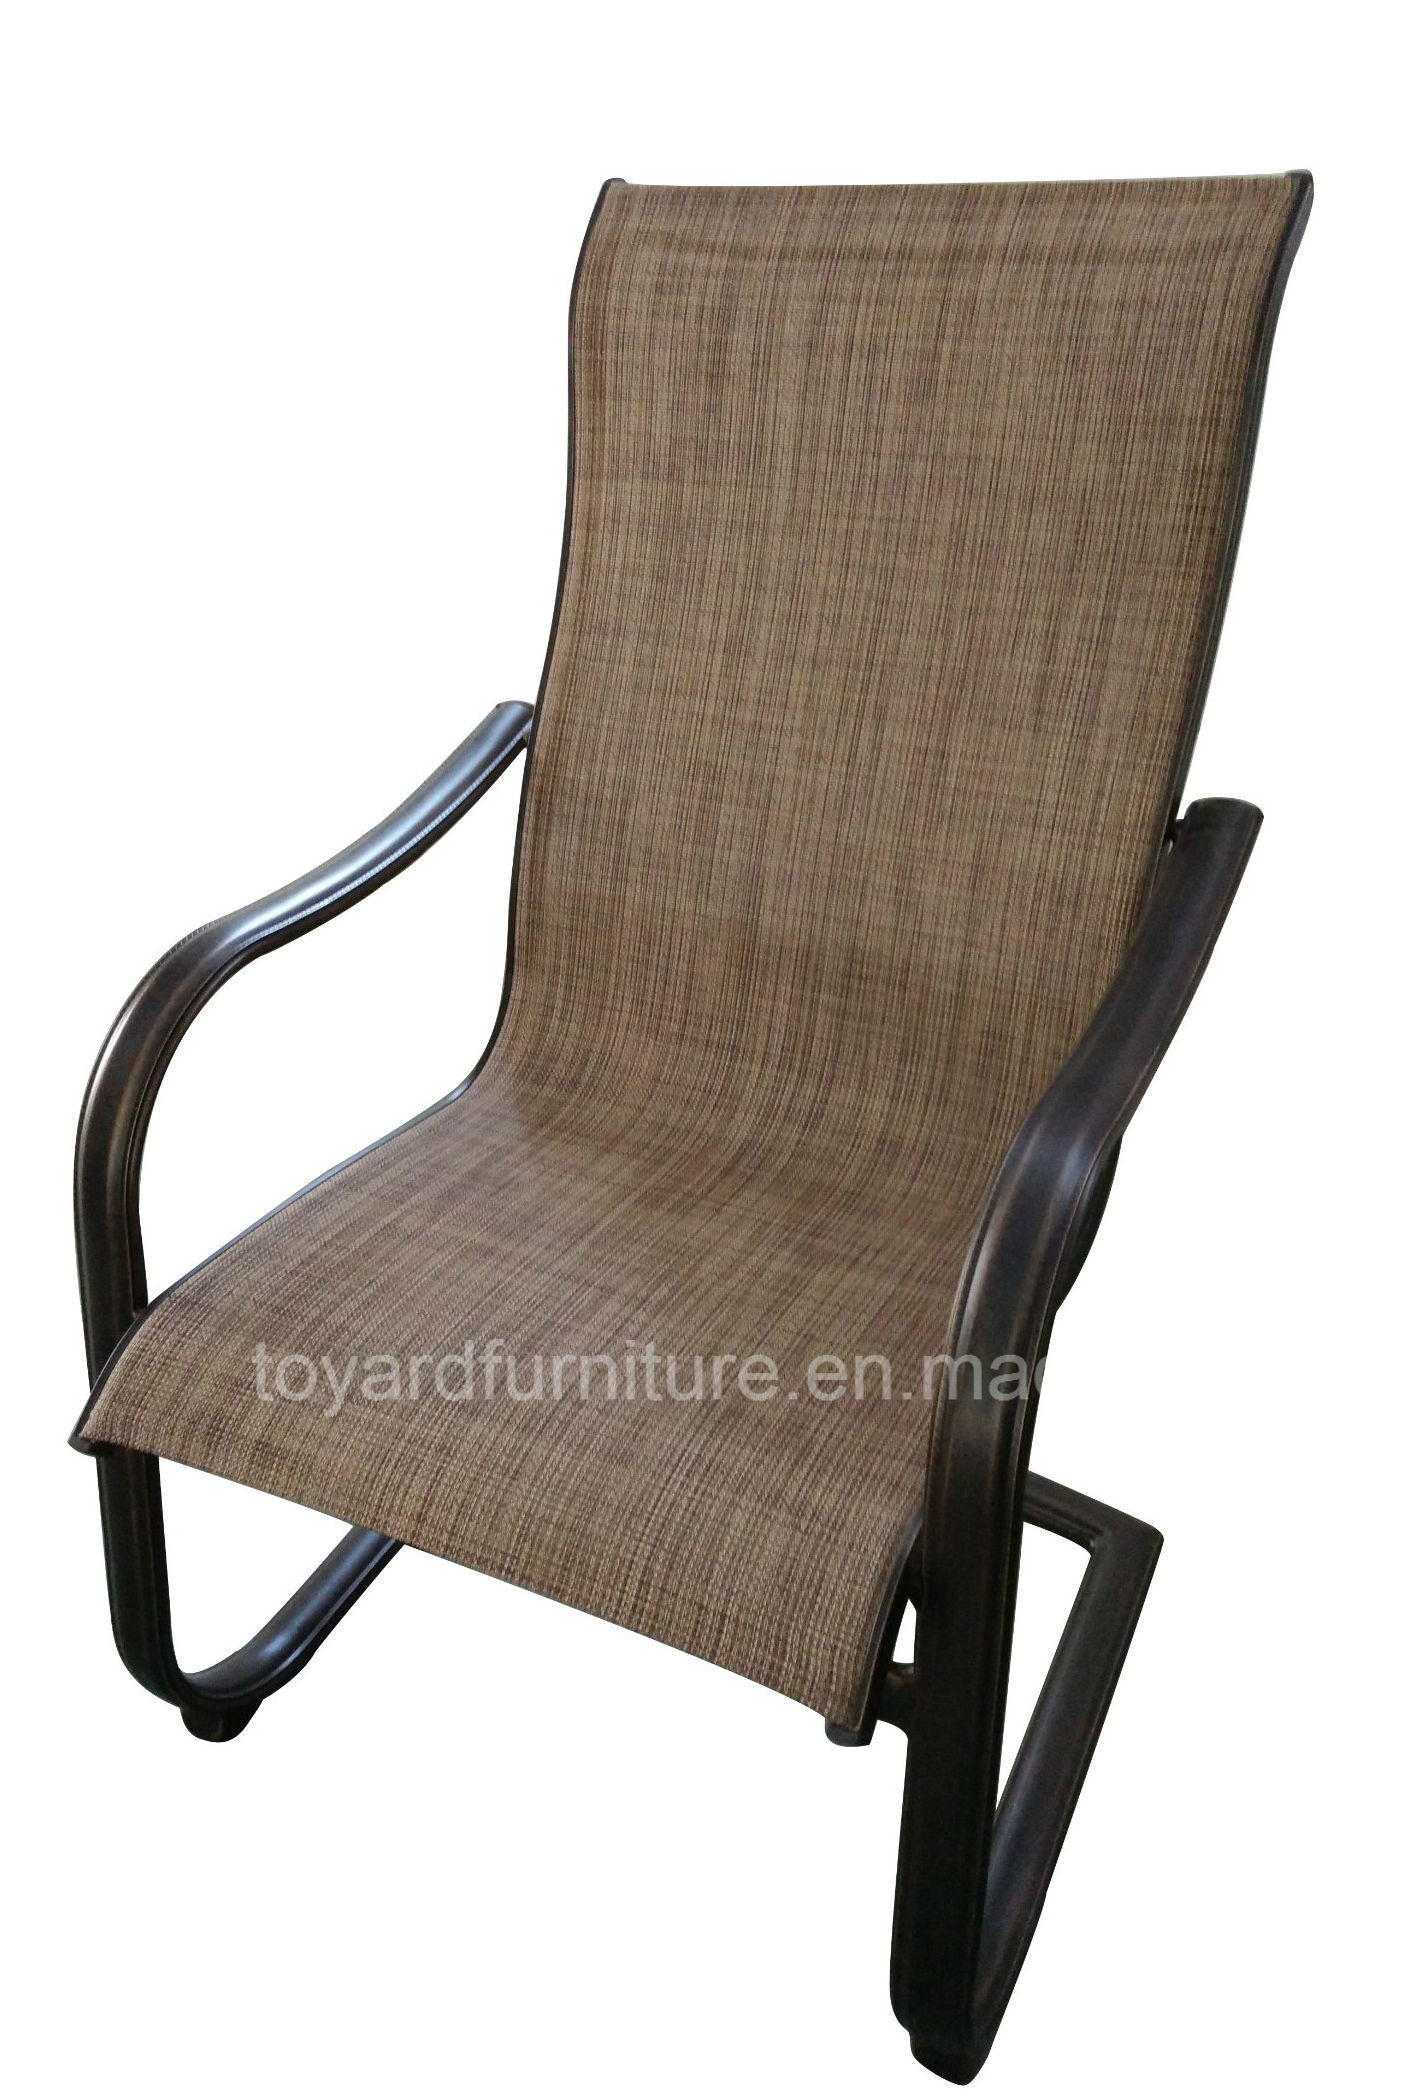 Best Choices Us Traditional Outdoor Spring Chair with Sling Mesh Back Aluminum Frame Brown Finish